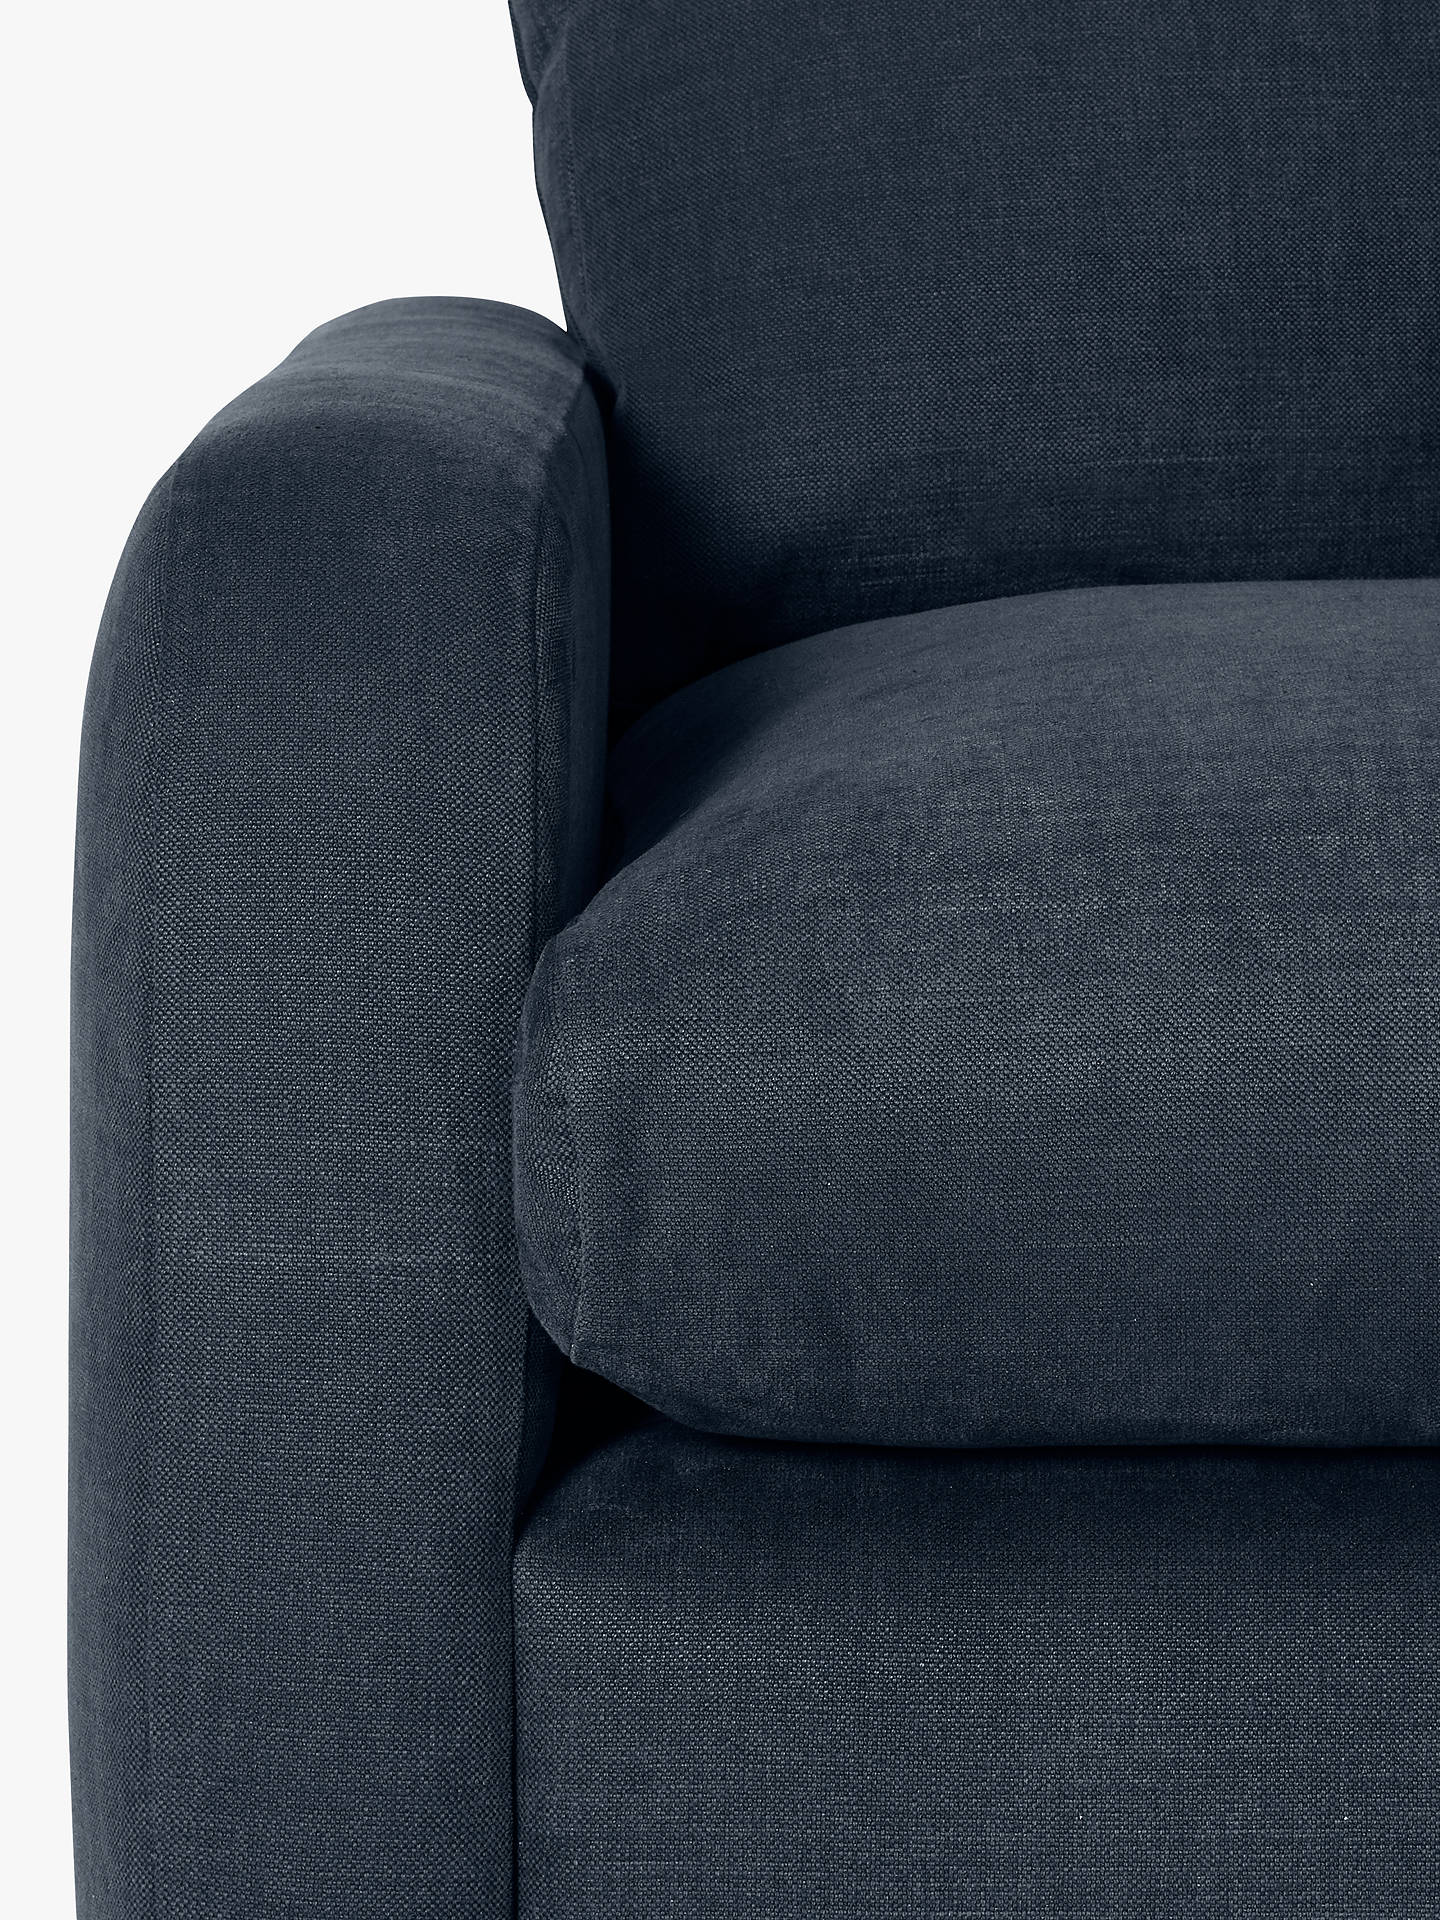 BuyFloppy Jo Large LHF Corner End Sofa by Loaf at John Lewis, Clever Velvet Liquorice Grey Online at johnlewis.com